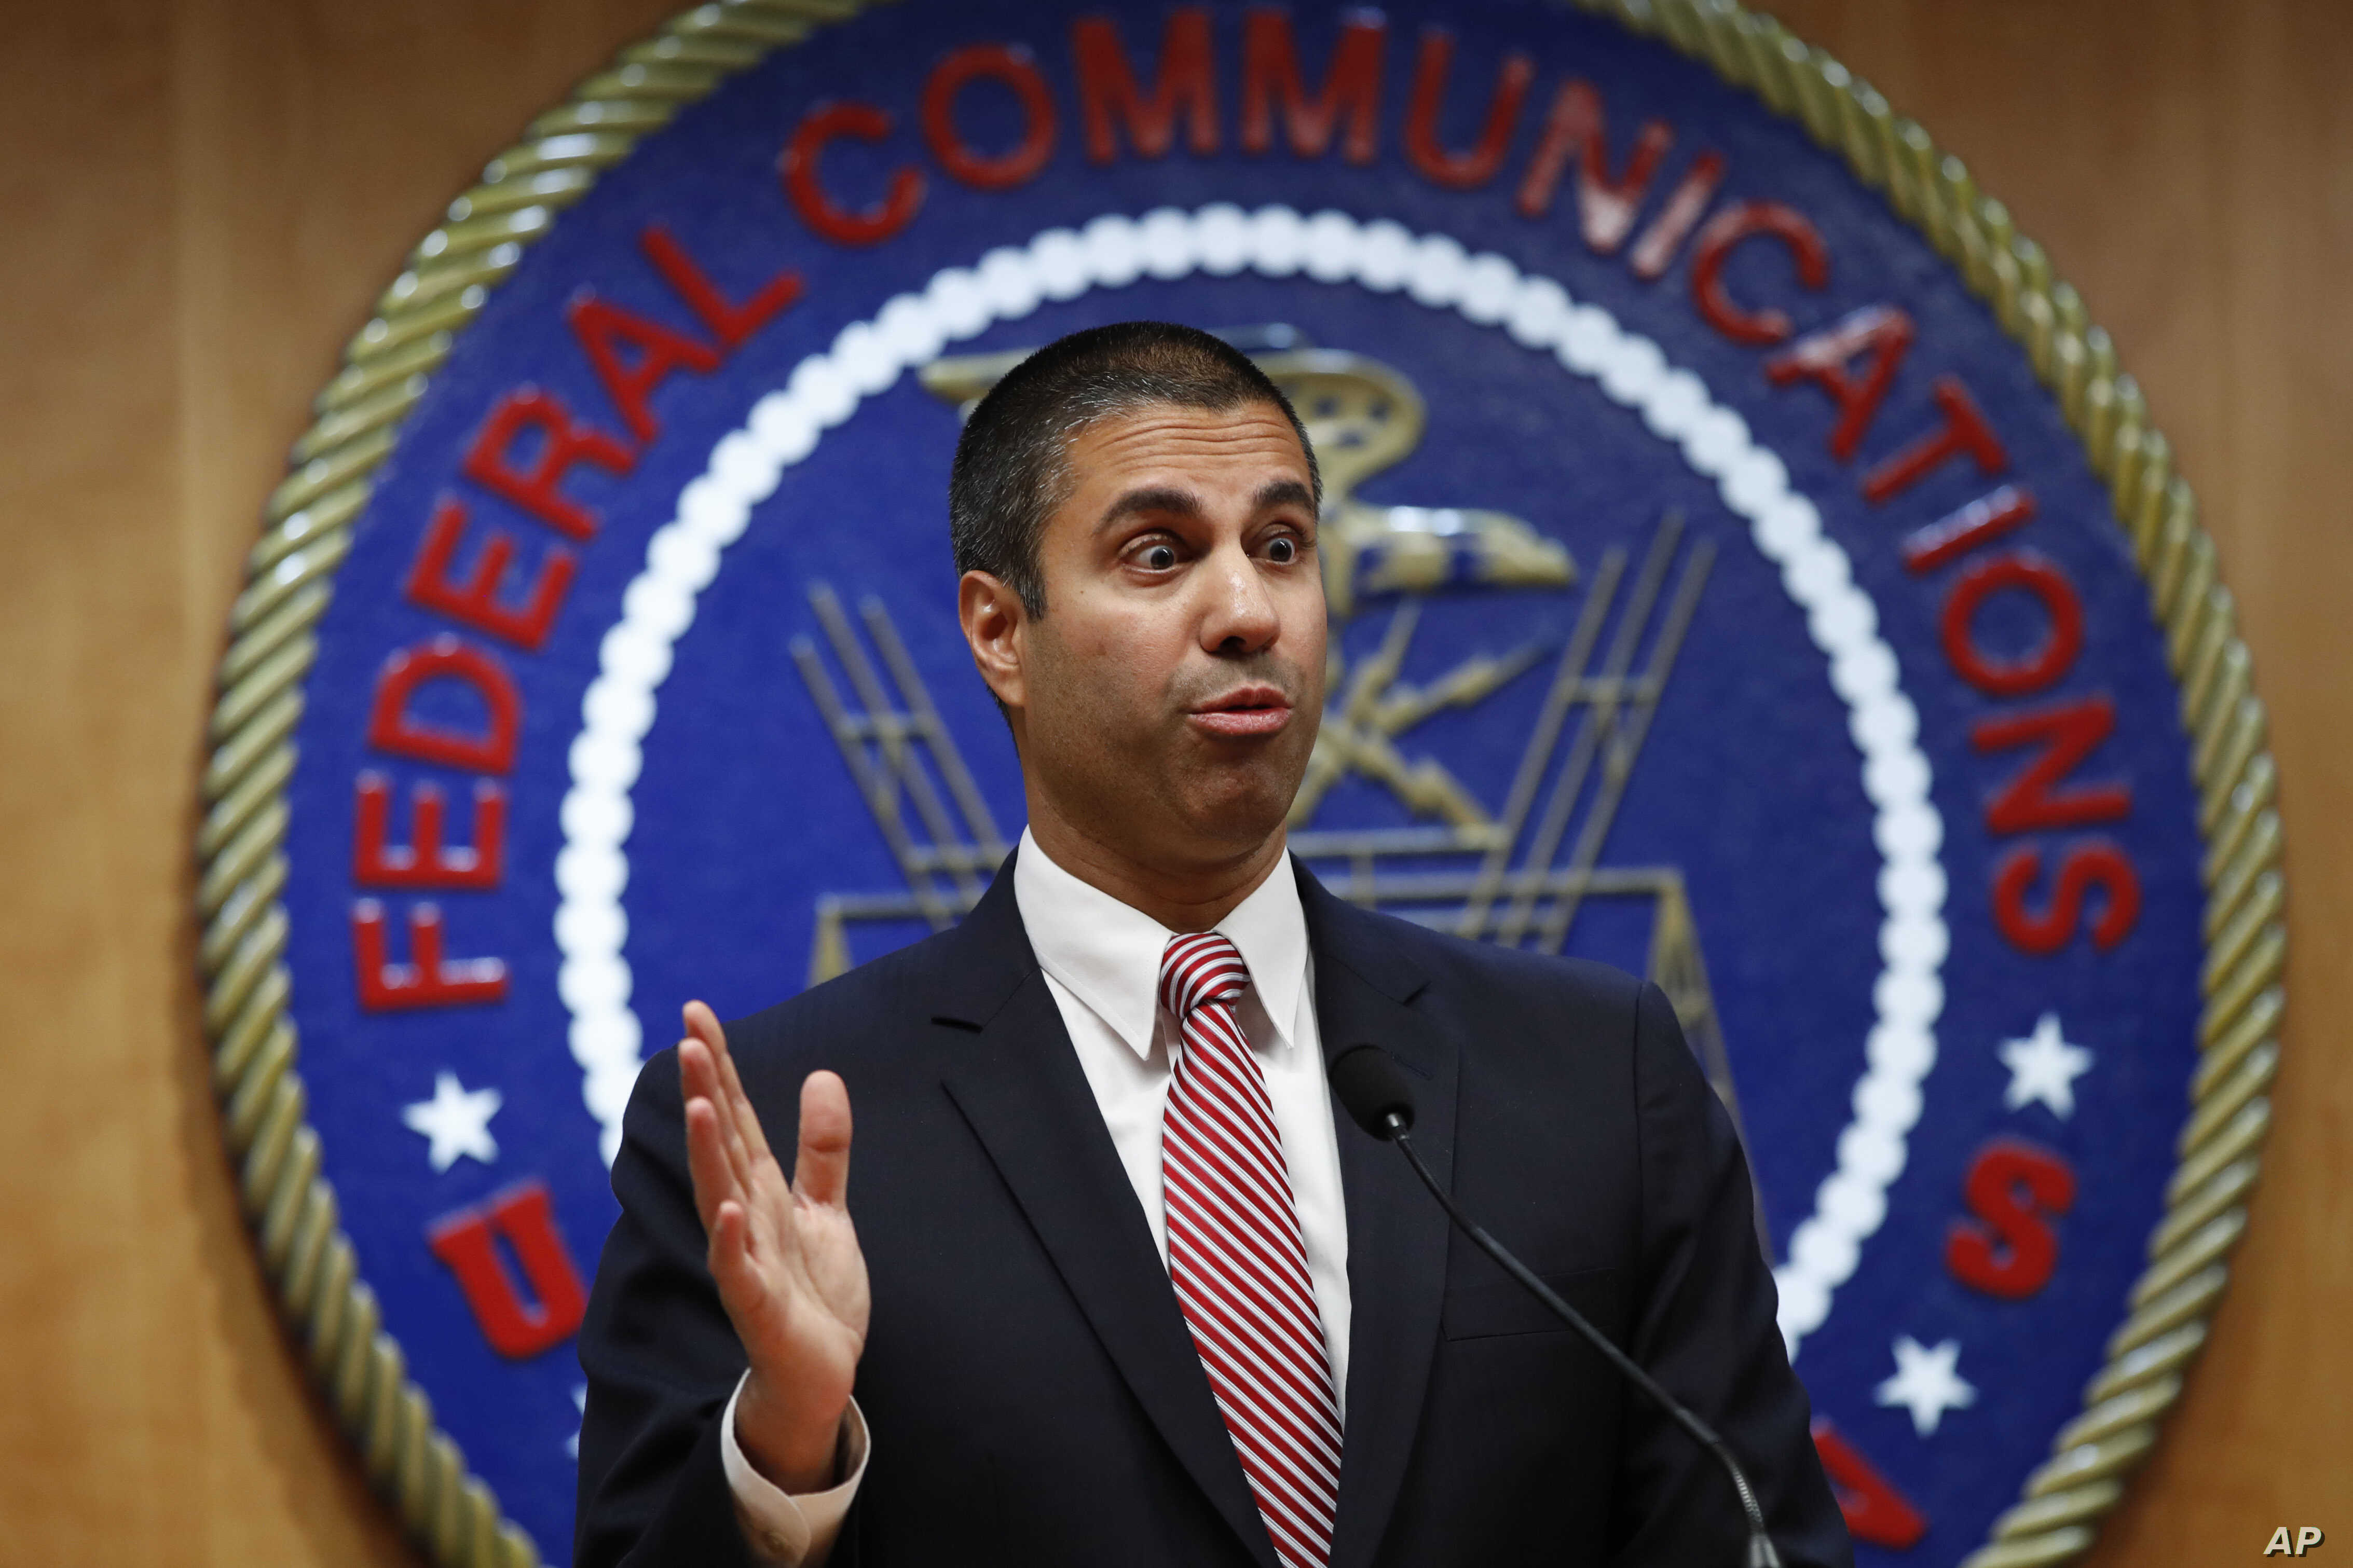 After a meeting voting to end net neutrality, Federal Communications Commission (FCC) Chairman Ajit Pai answers a question from a reporter,, Dec. 14, 2017, in Washington.